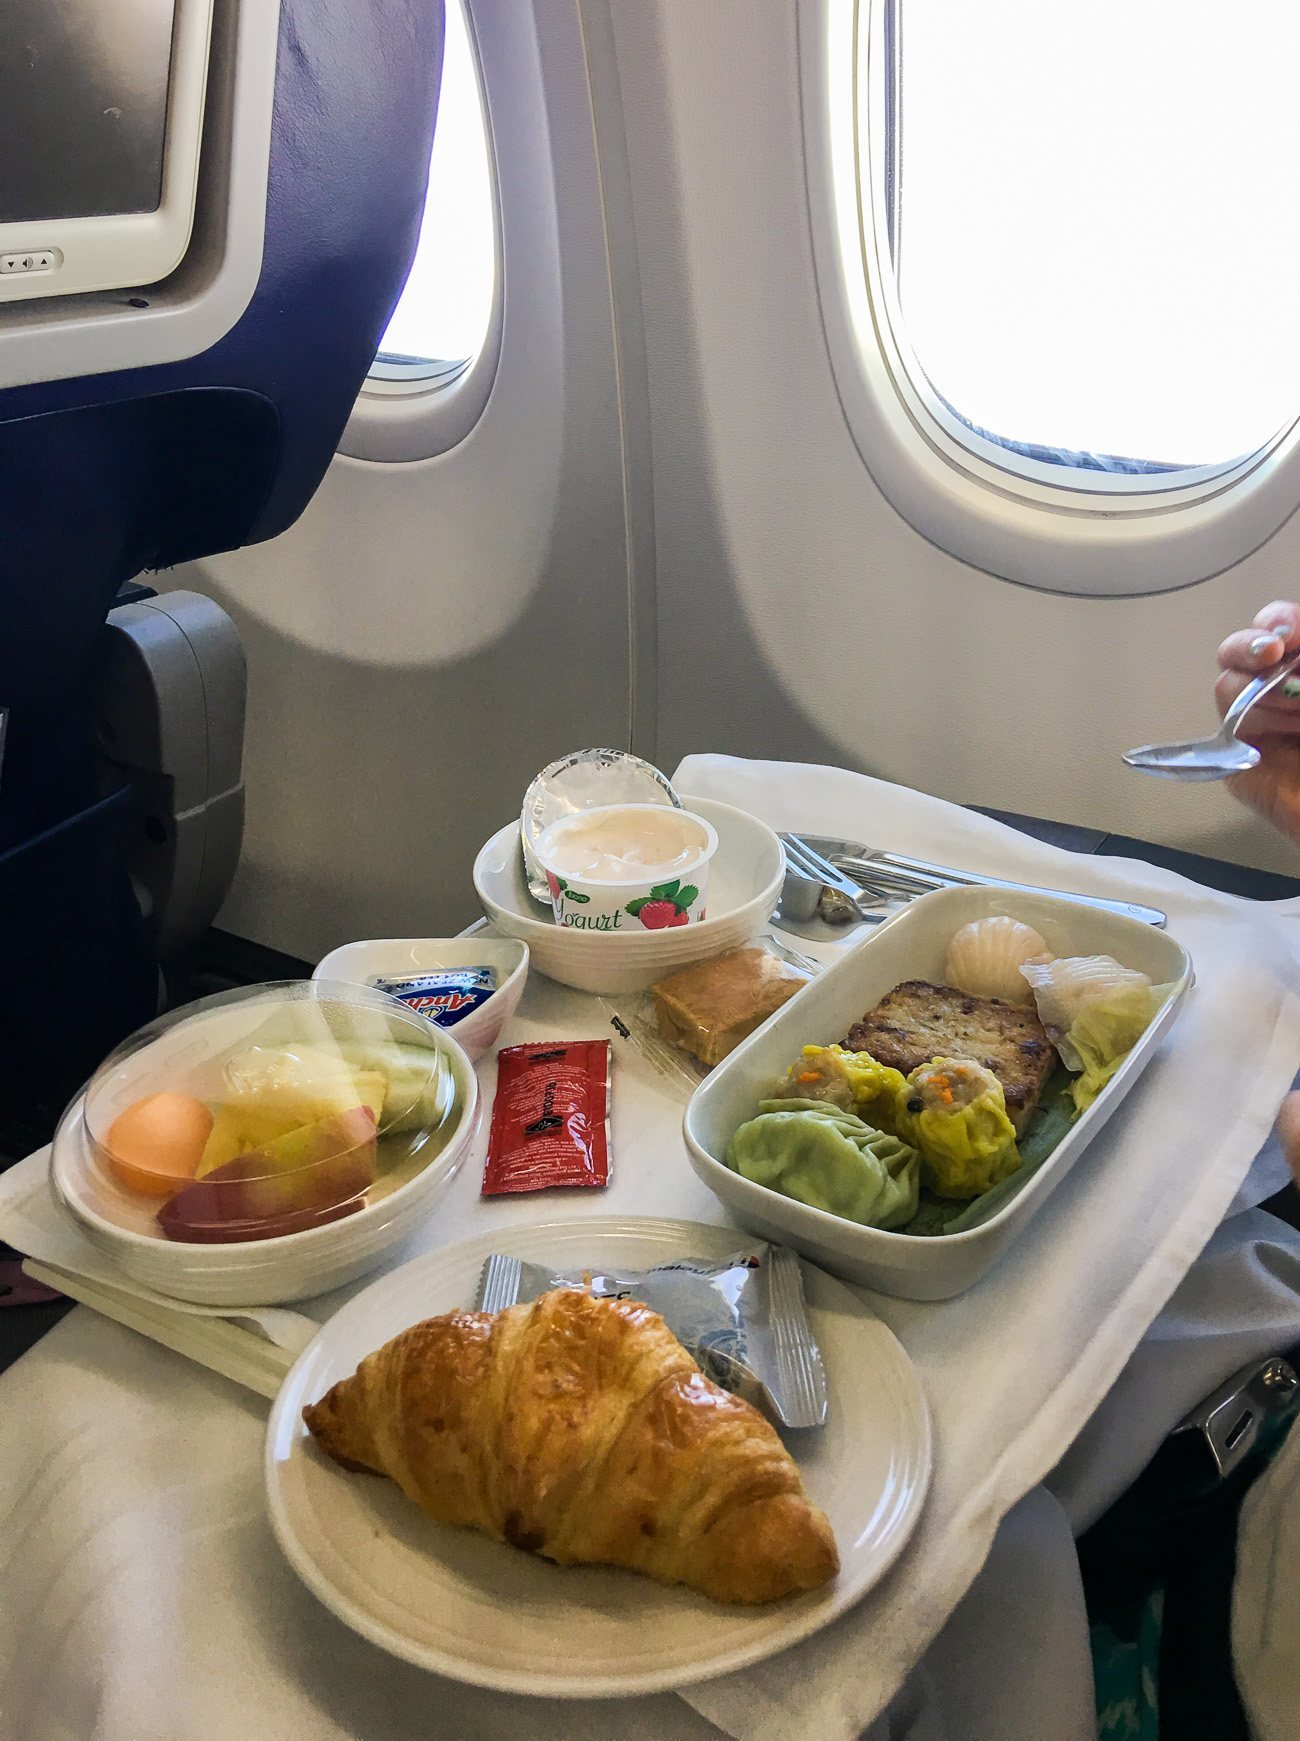 Dim sum breakfast on Malaysia Airlines in business class from Taipei to Kota Kinabalu